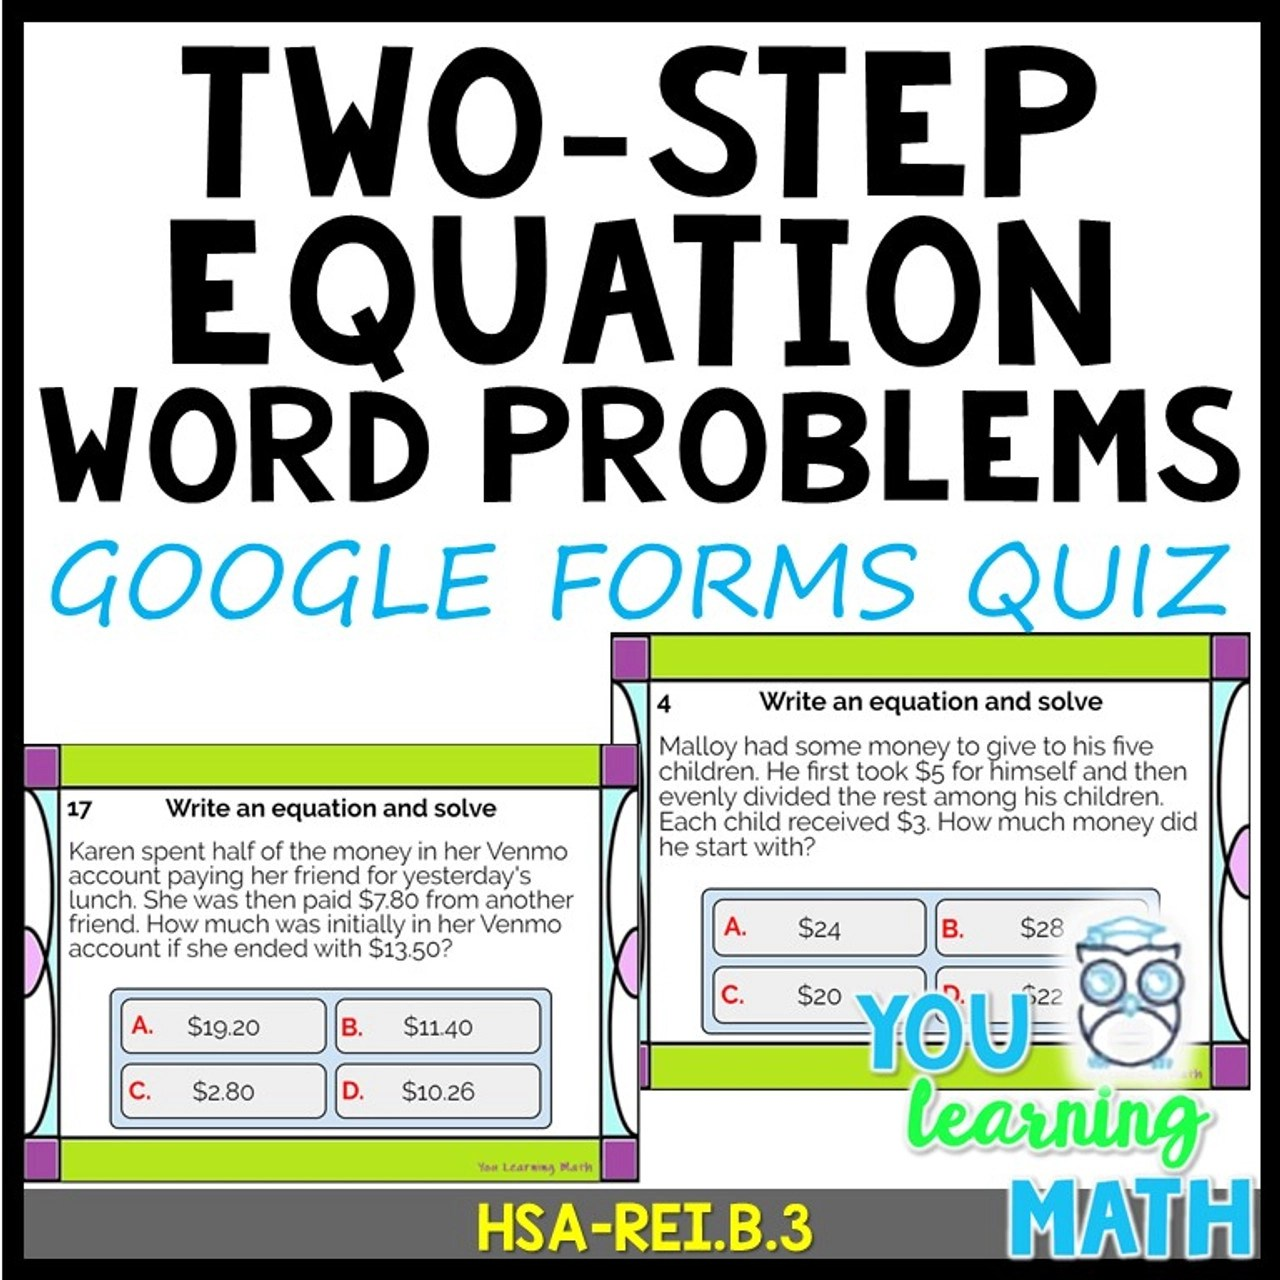 Two-Step Equation Word Problems: Google Forms Quiz - 20 Problems - Amped Up  Learning [ 1280 x 1280 Pixel ]